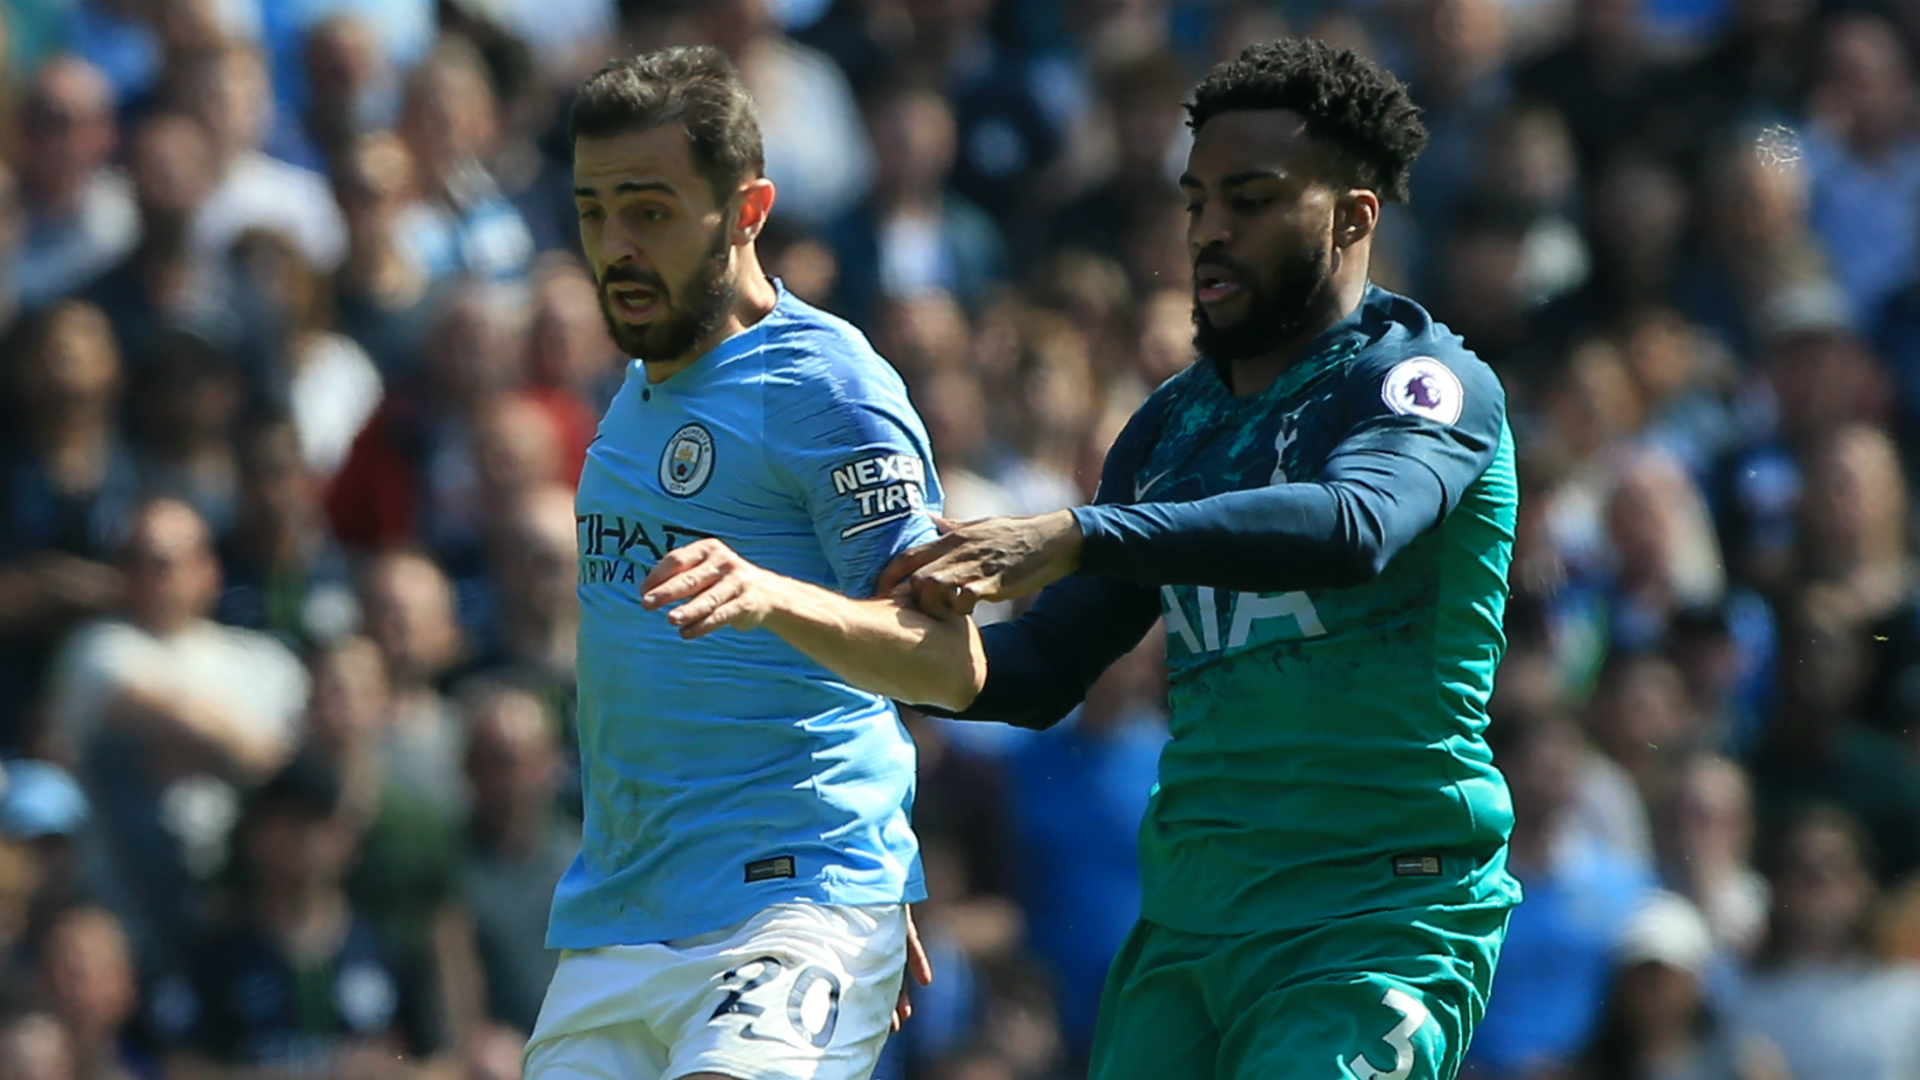 Nerves played a part, admits Bernardo Silva